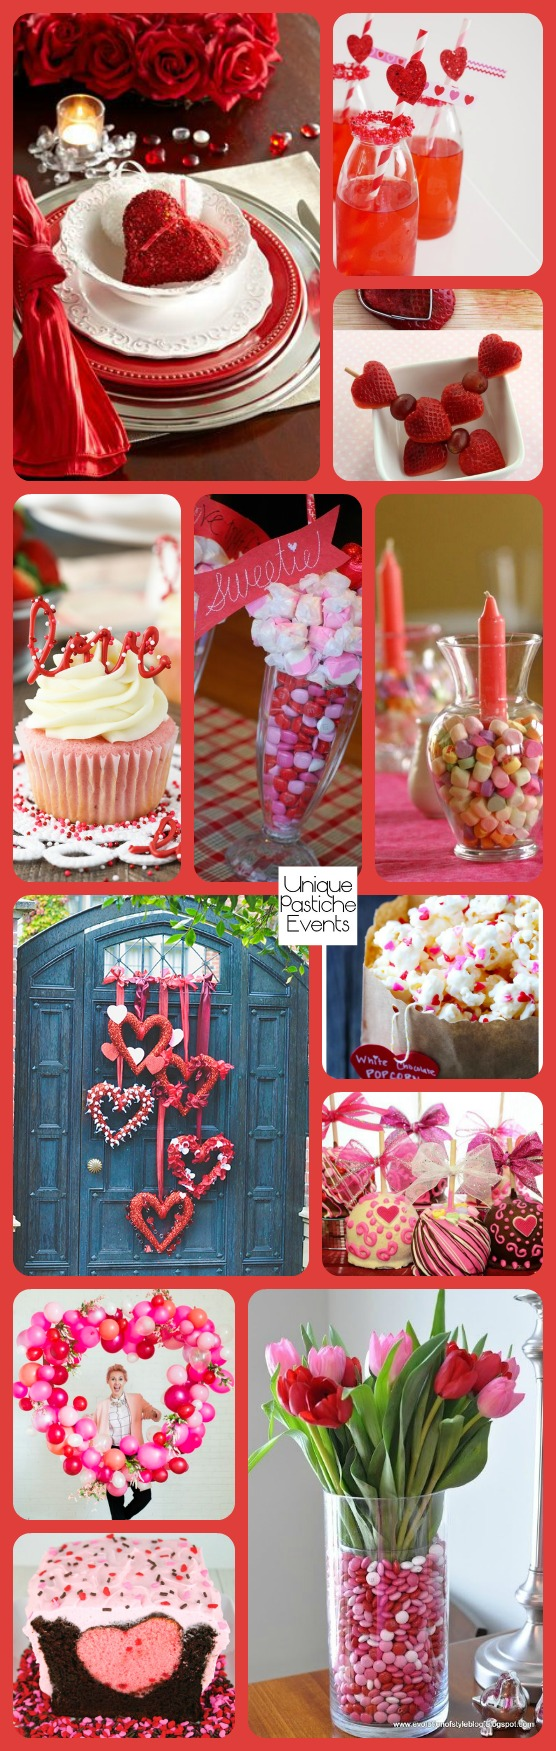 Sweets for Your Sweetie - Valentine's Day Dessert Soiree Ideas